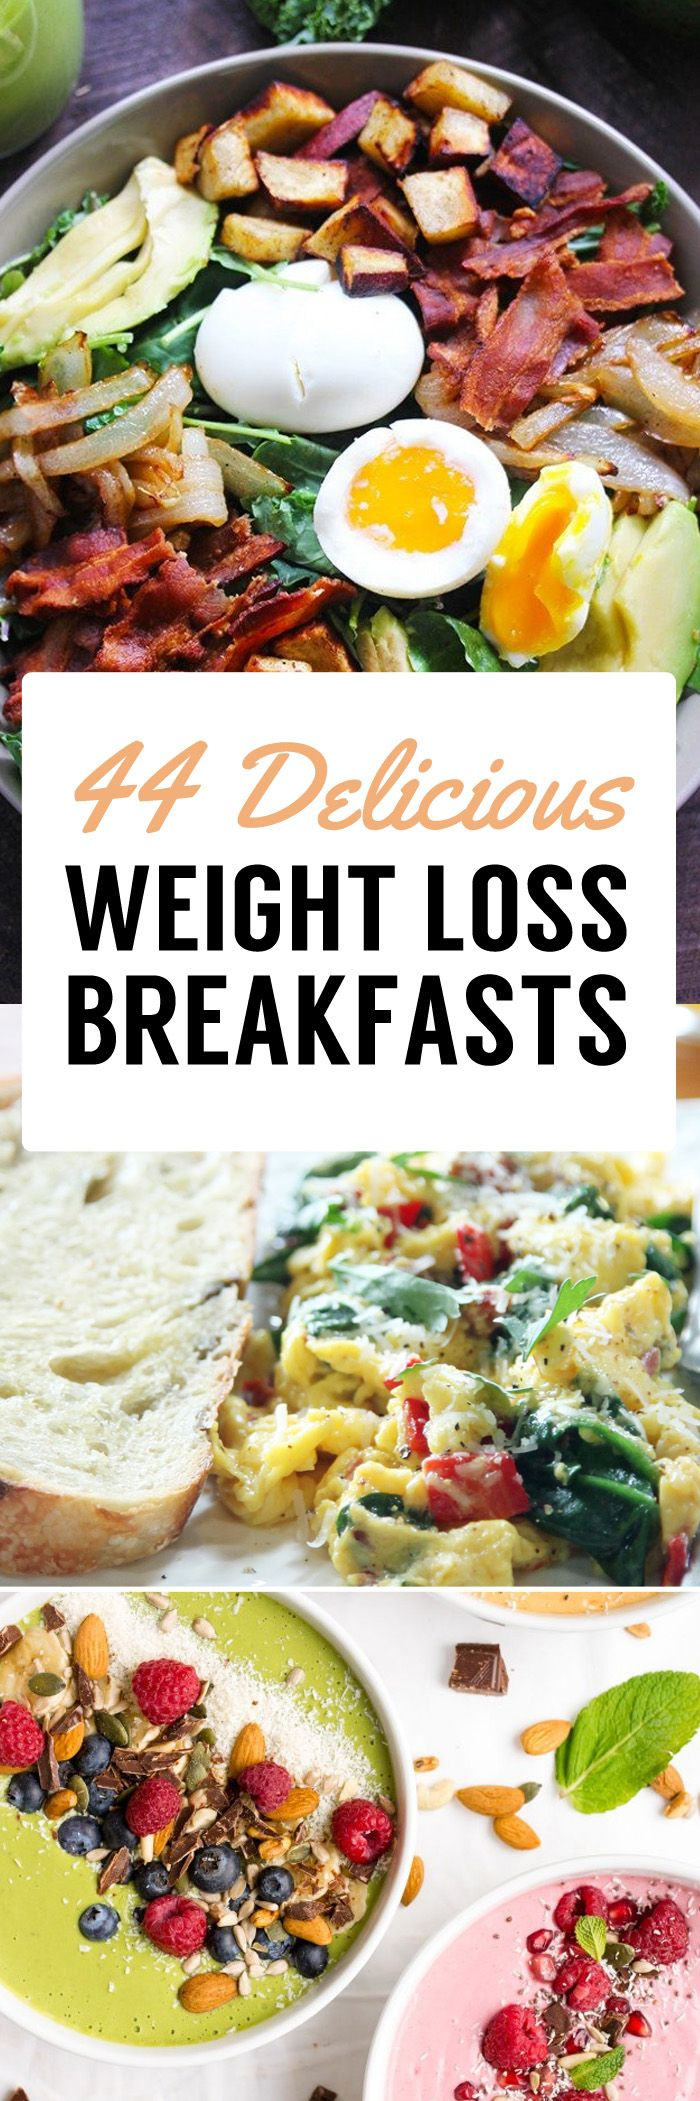 "We've all heard the phrase, ""breakfast is the most important meal of the day"" but when it comes to losing weight, every meal time is important in it's own right. Though it's true, starting your day with a delicious, healthy, calorie counted meal can set you up for success for the entire day, so it's …"